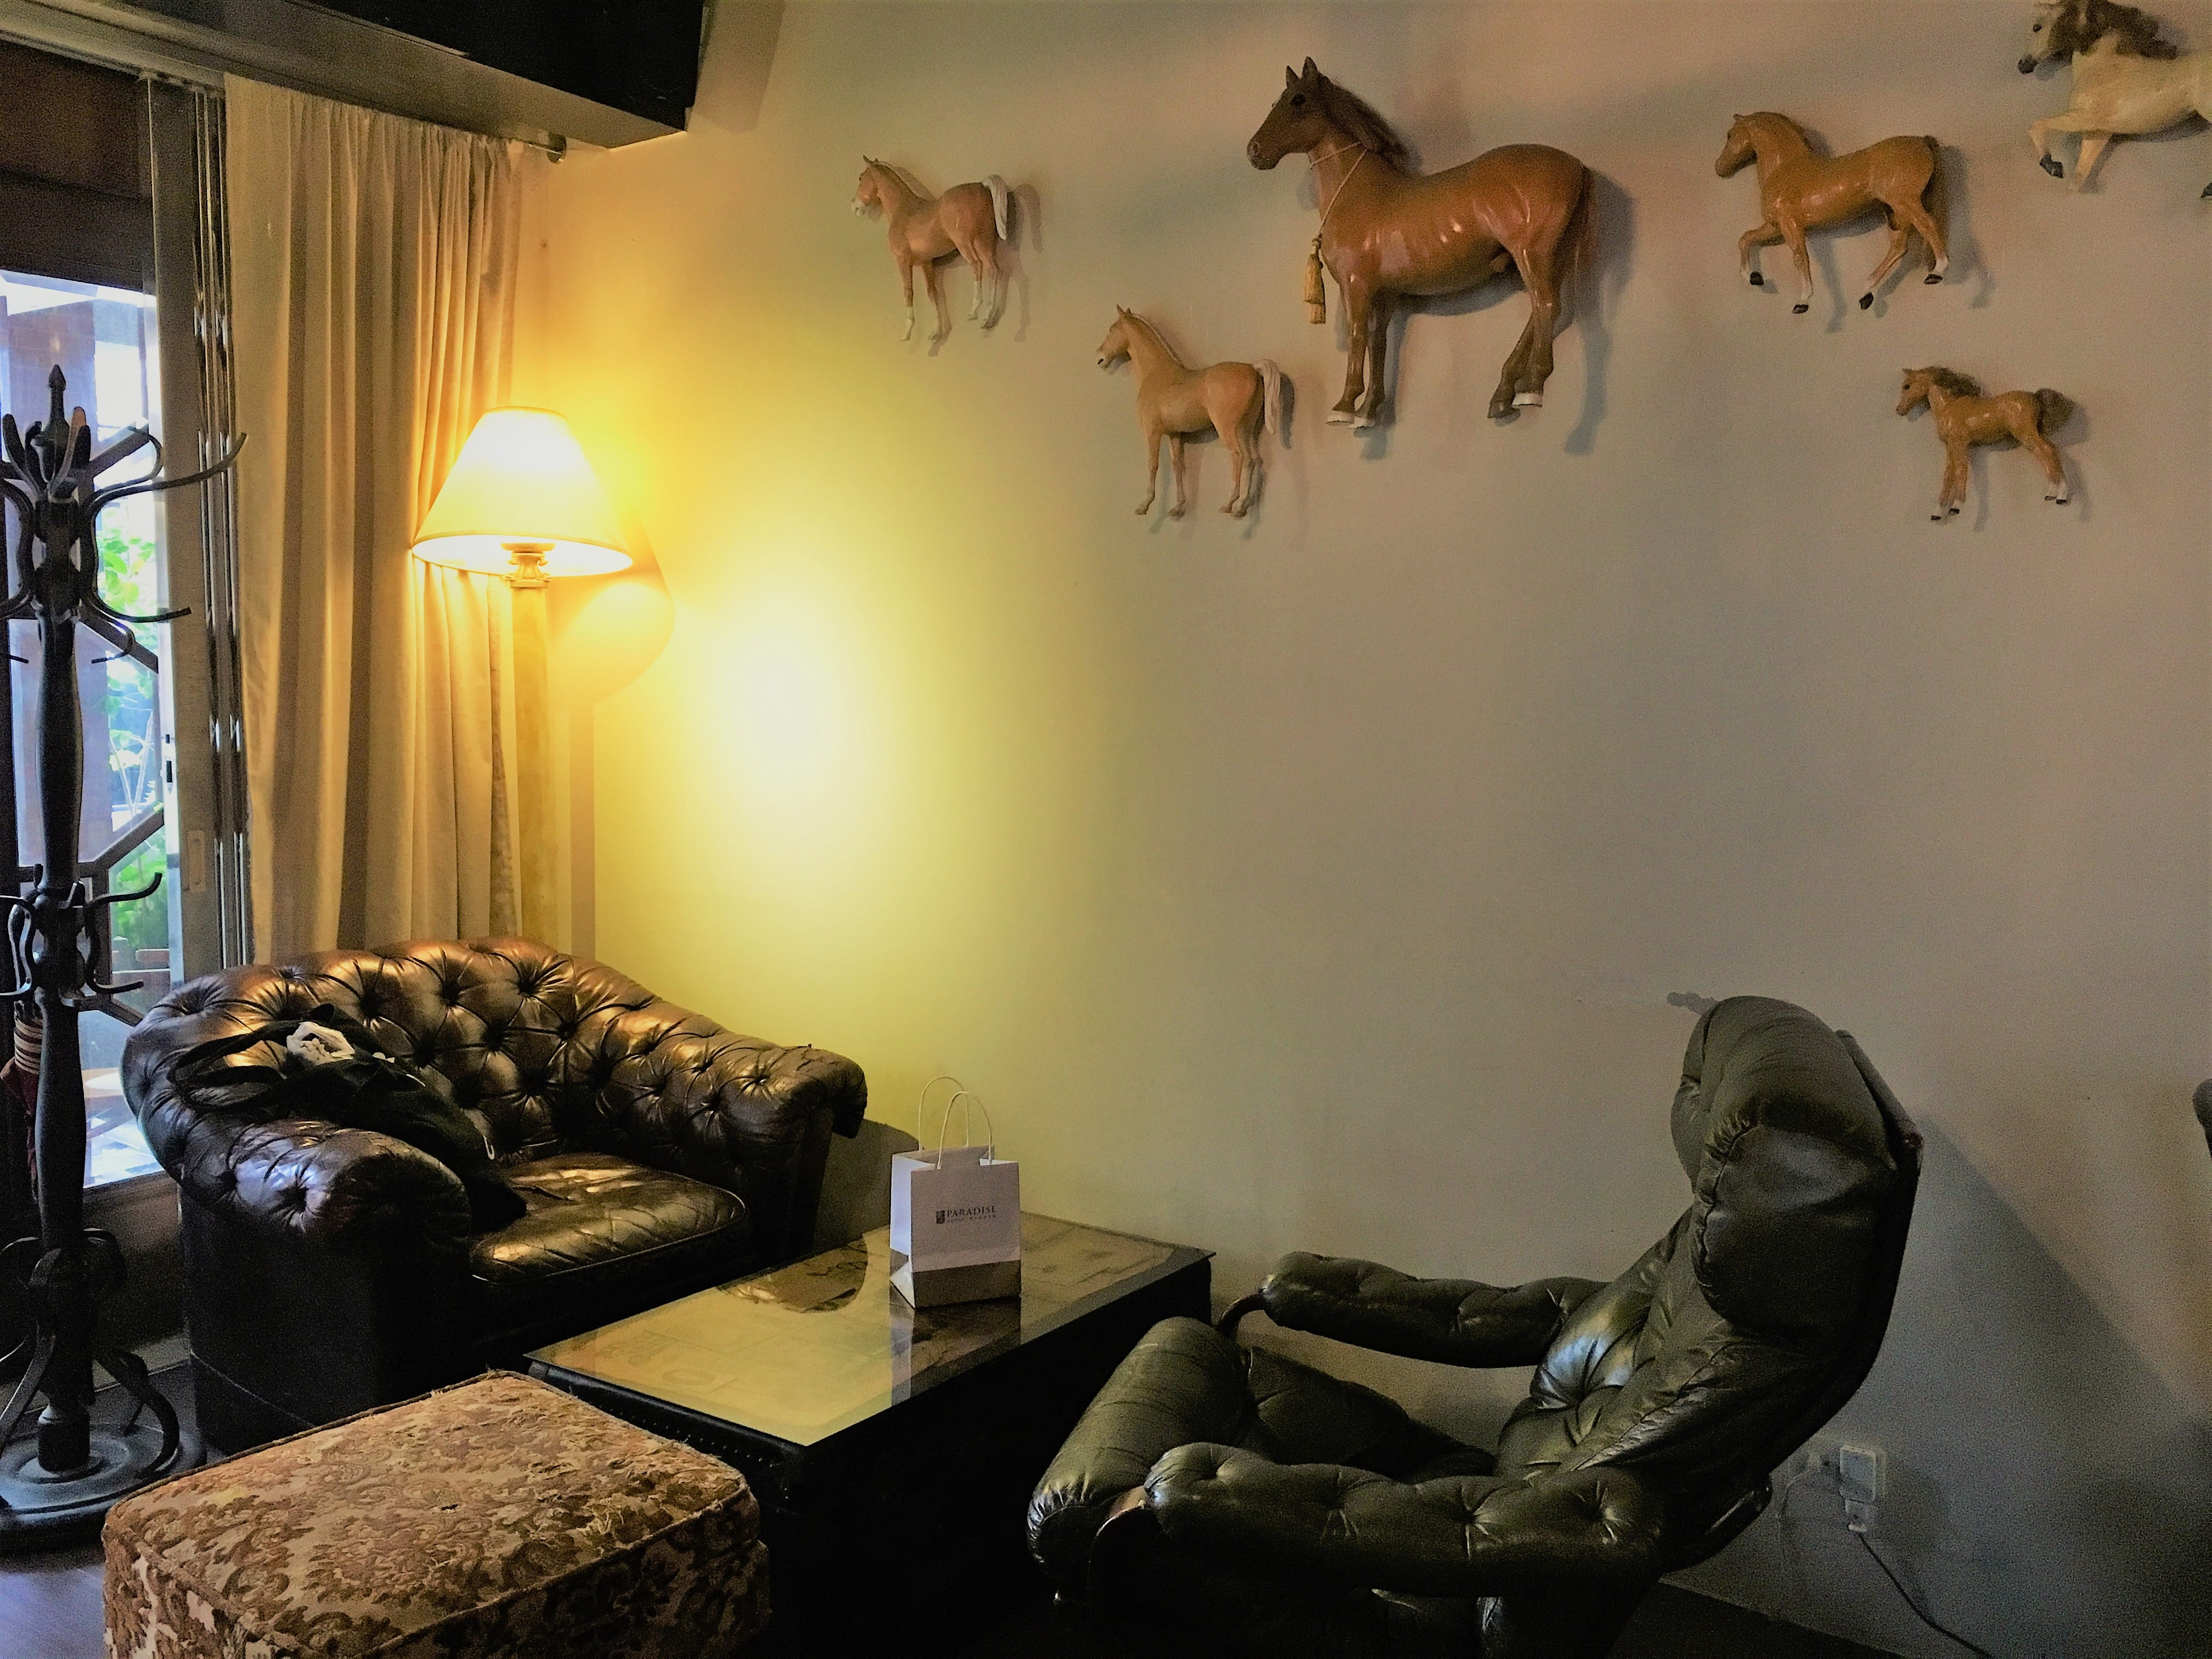 Eclectic decors on the wall of Modern Mode & Modern Mode Cafe in Dadaocheng, Taipei